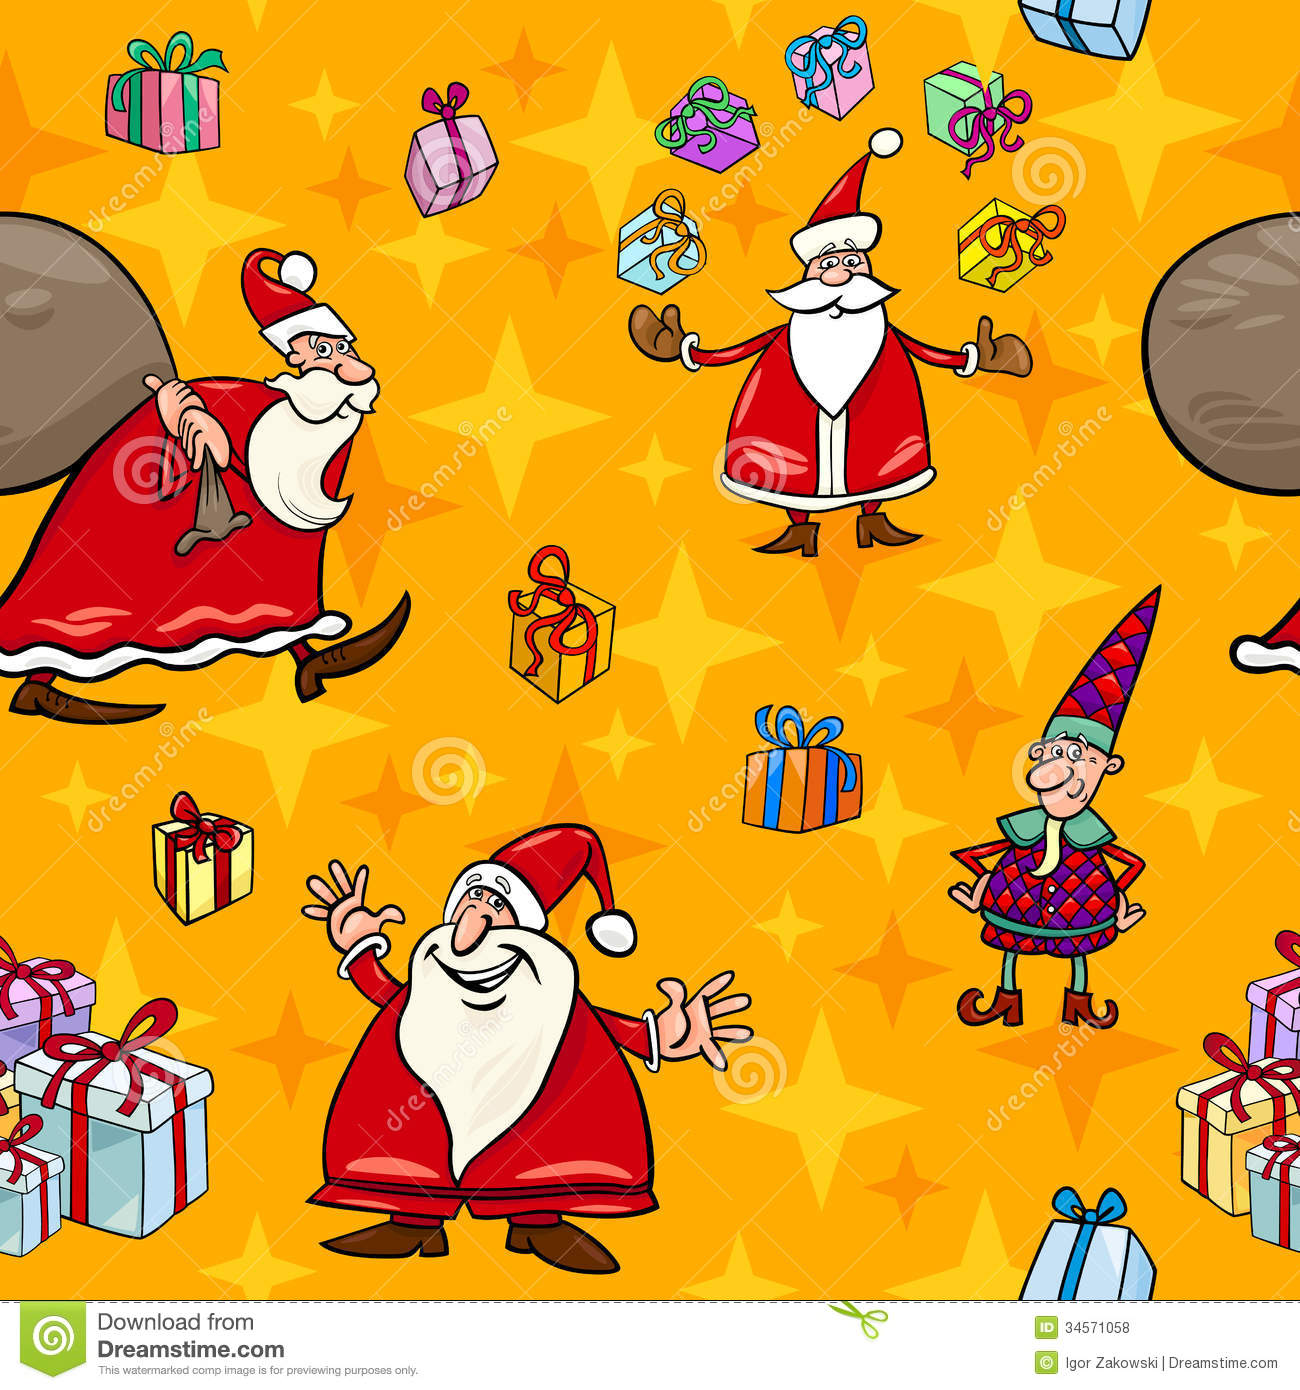 Santa Claus Clipart Hd Image Wallpaper also Abstract Green Rose Hd X together with Abstract Art Painting Wallpaper For Mobile furthermore Maxresdefault besides Inflatable Cartoon Customized Advertising Giant Christmas Inflatable Santa Claus For Christmas Outdoor Decoration. on santa claus cartoon